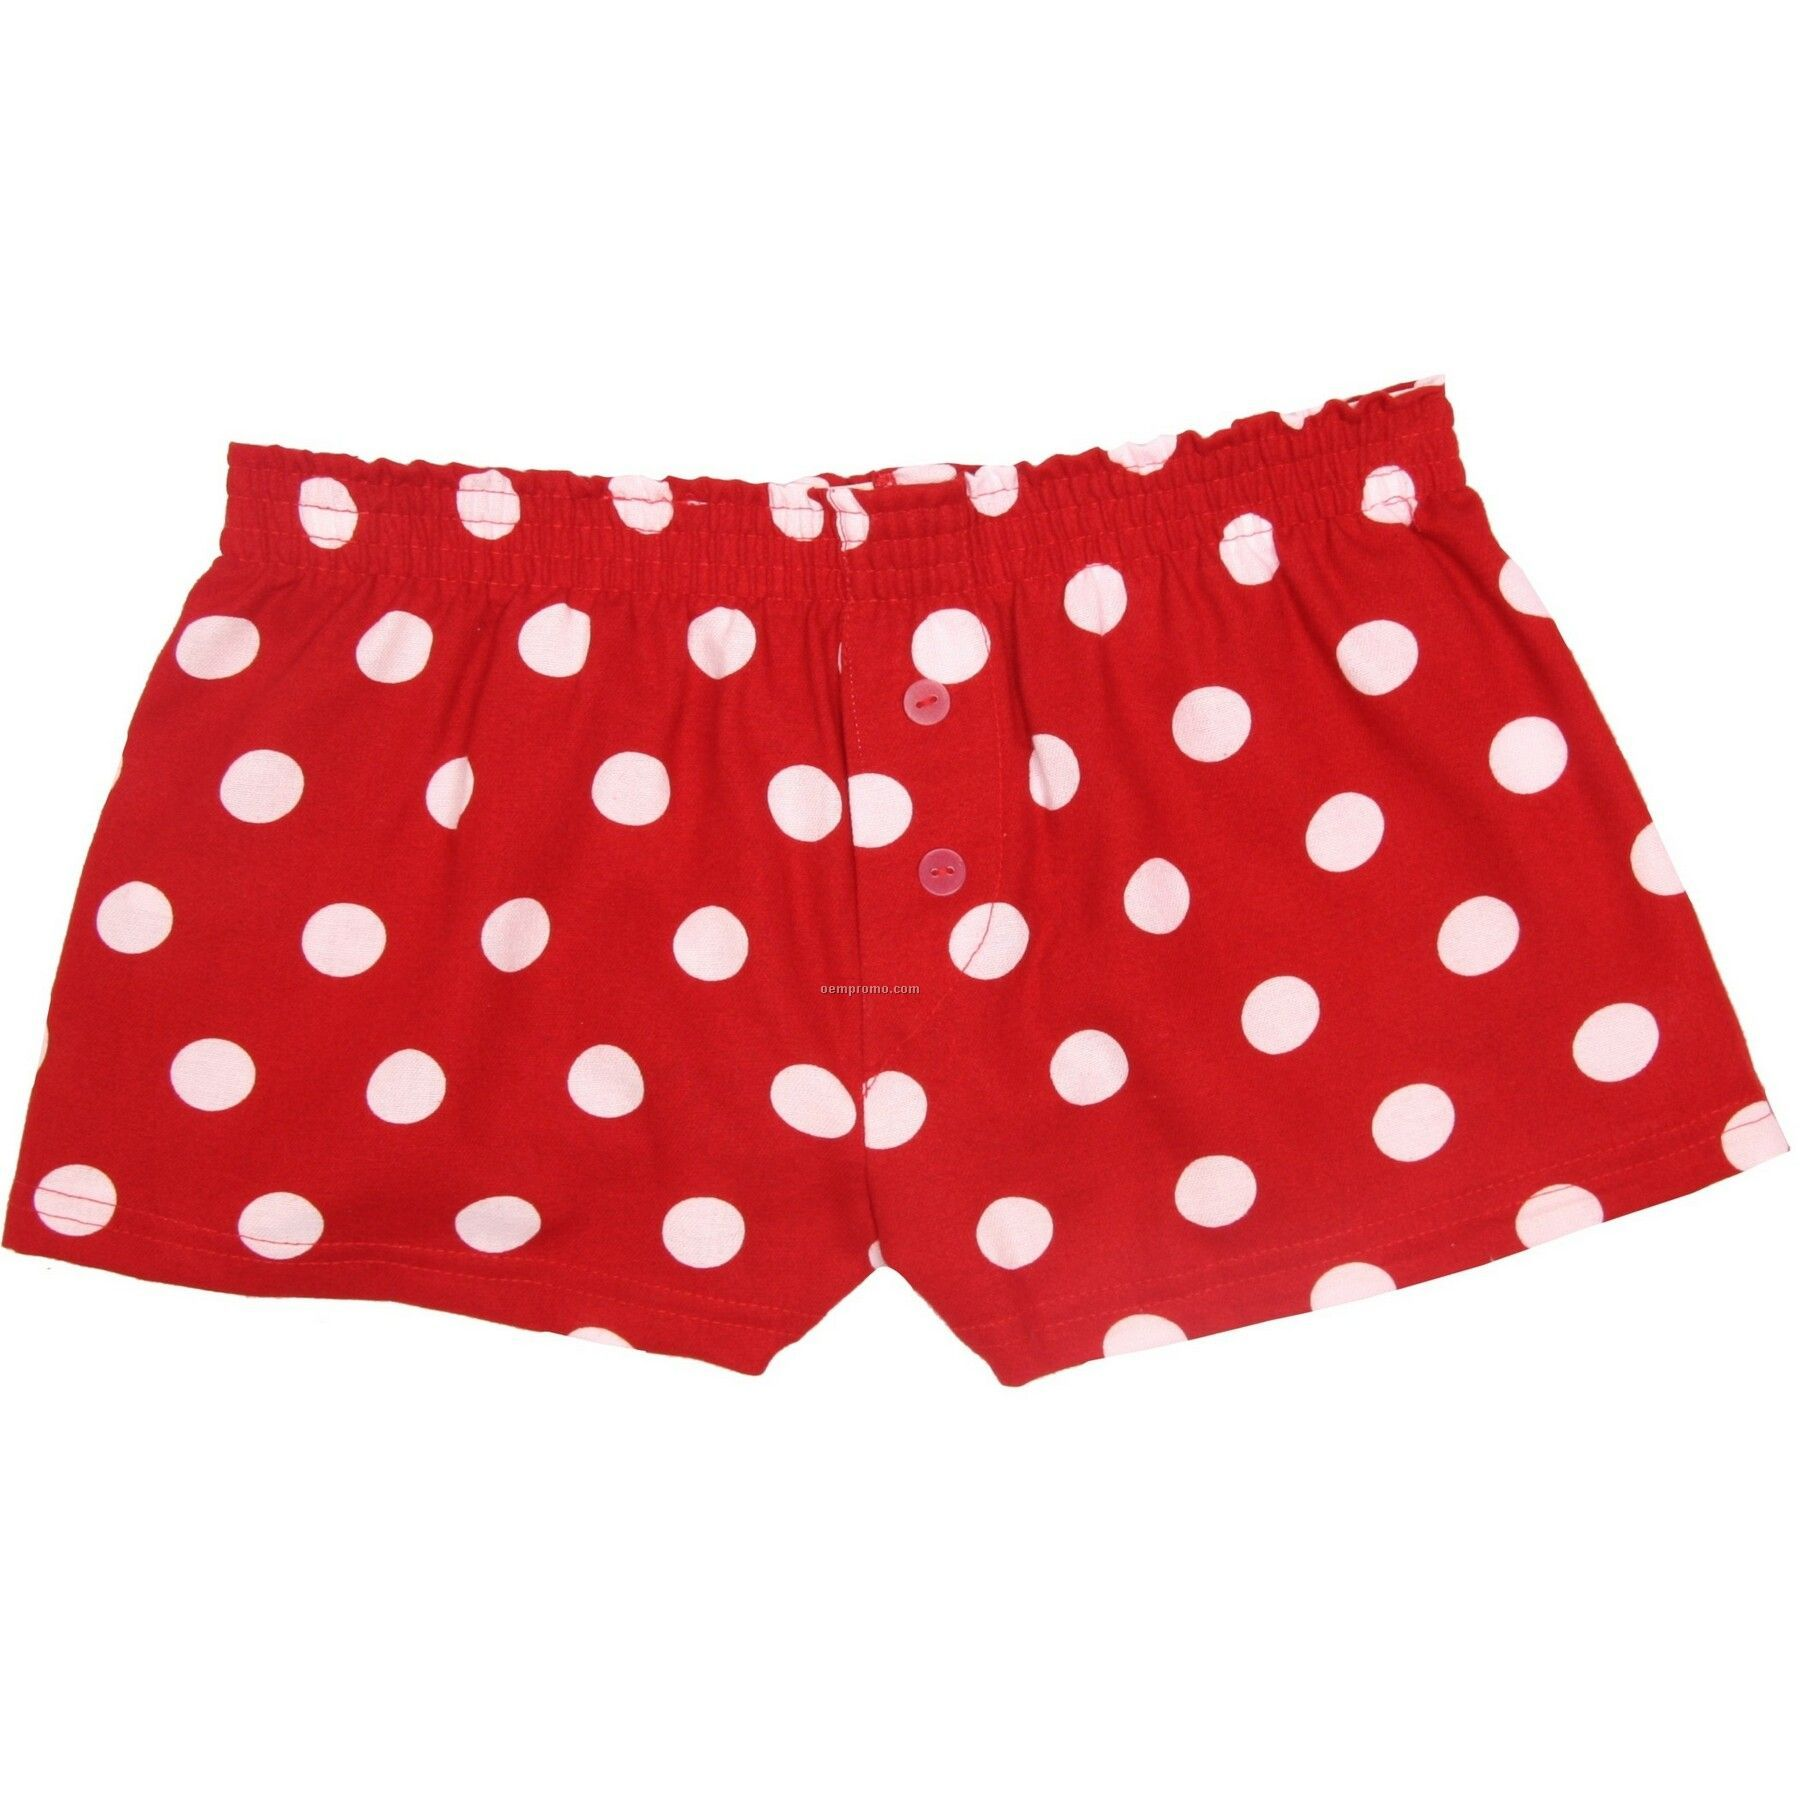 Ladies' Red Hot Spot Flannel Bitty Boxer Short